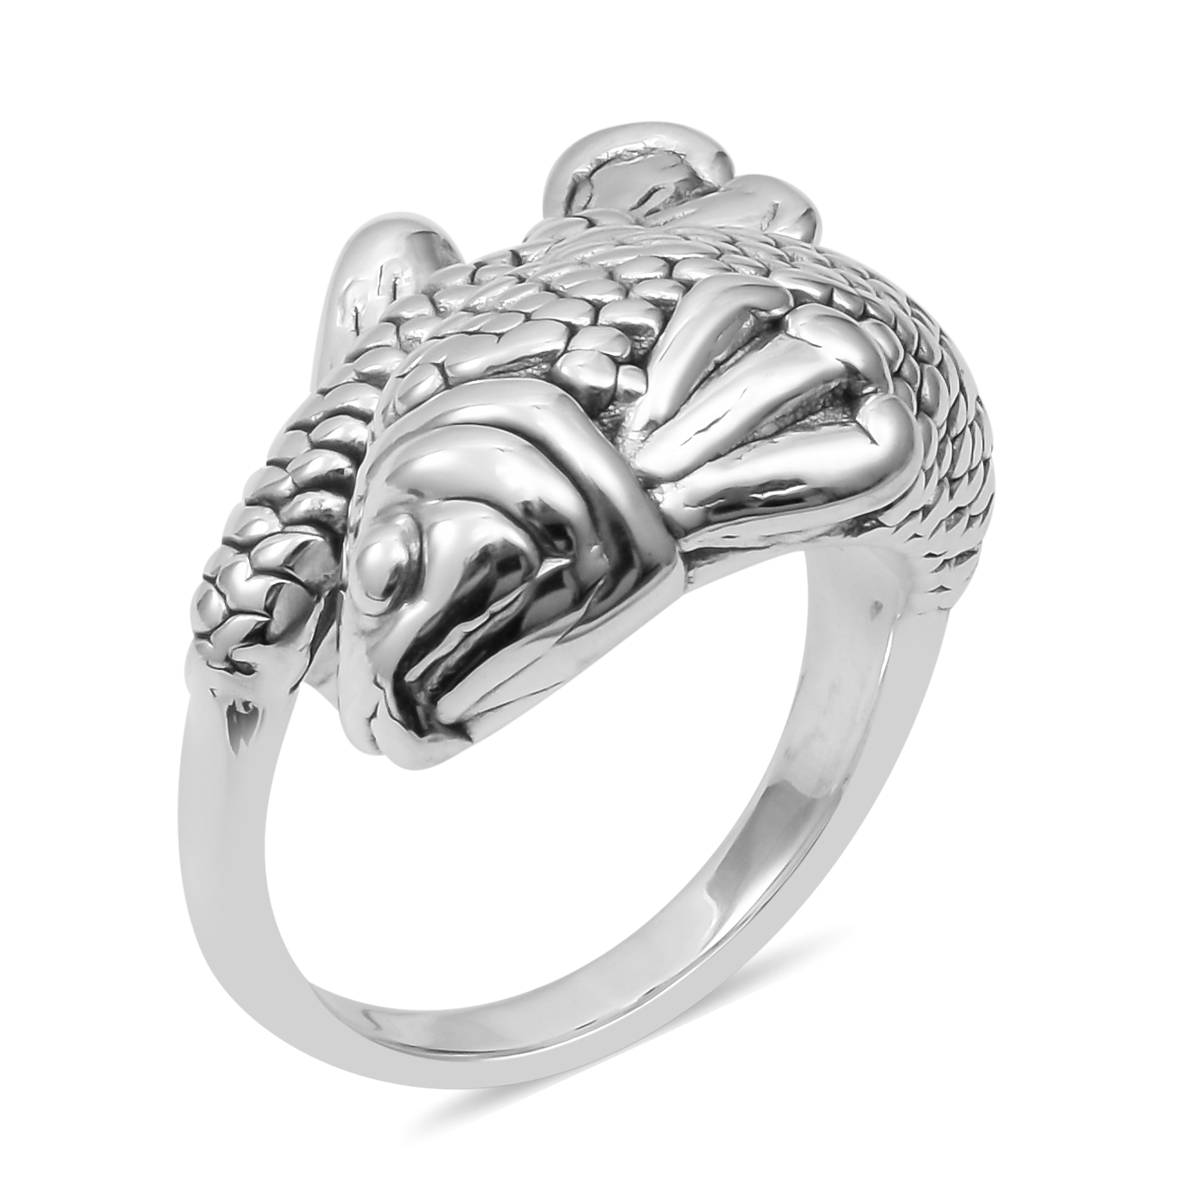 Ring (Size 9.0) in Sterling Silver (Avg. 6.12 g)